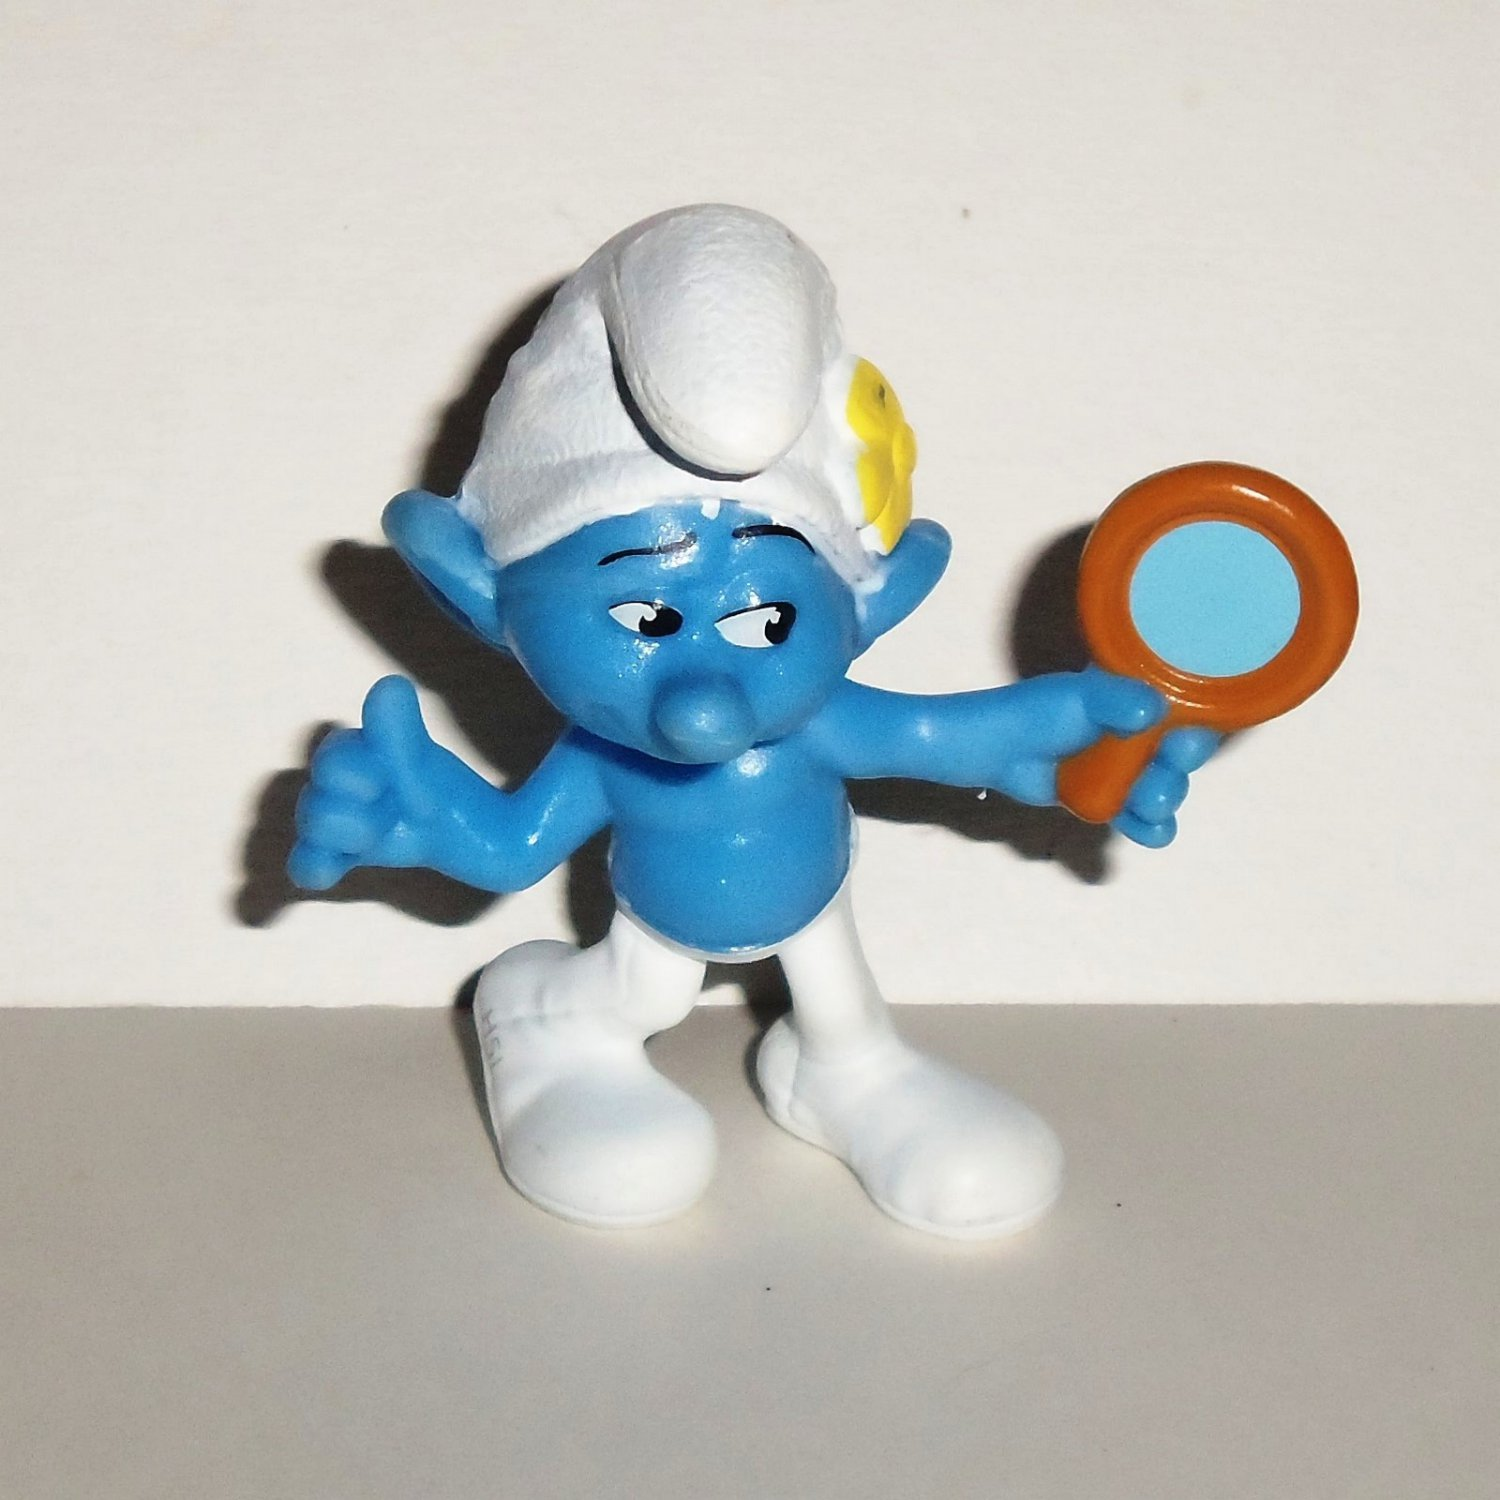 Mcdonald S Happy Meal Toys 2013 : Mcdonald s smurfs vanity smurf pvc figure happy meal